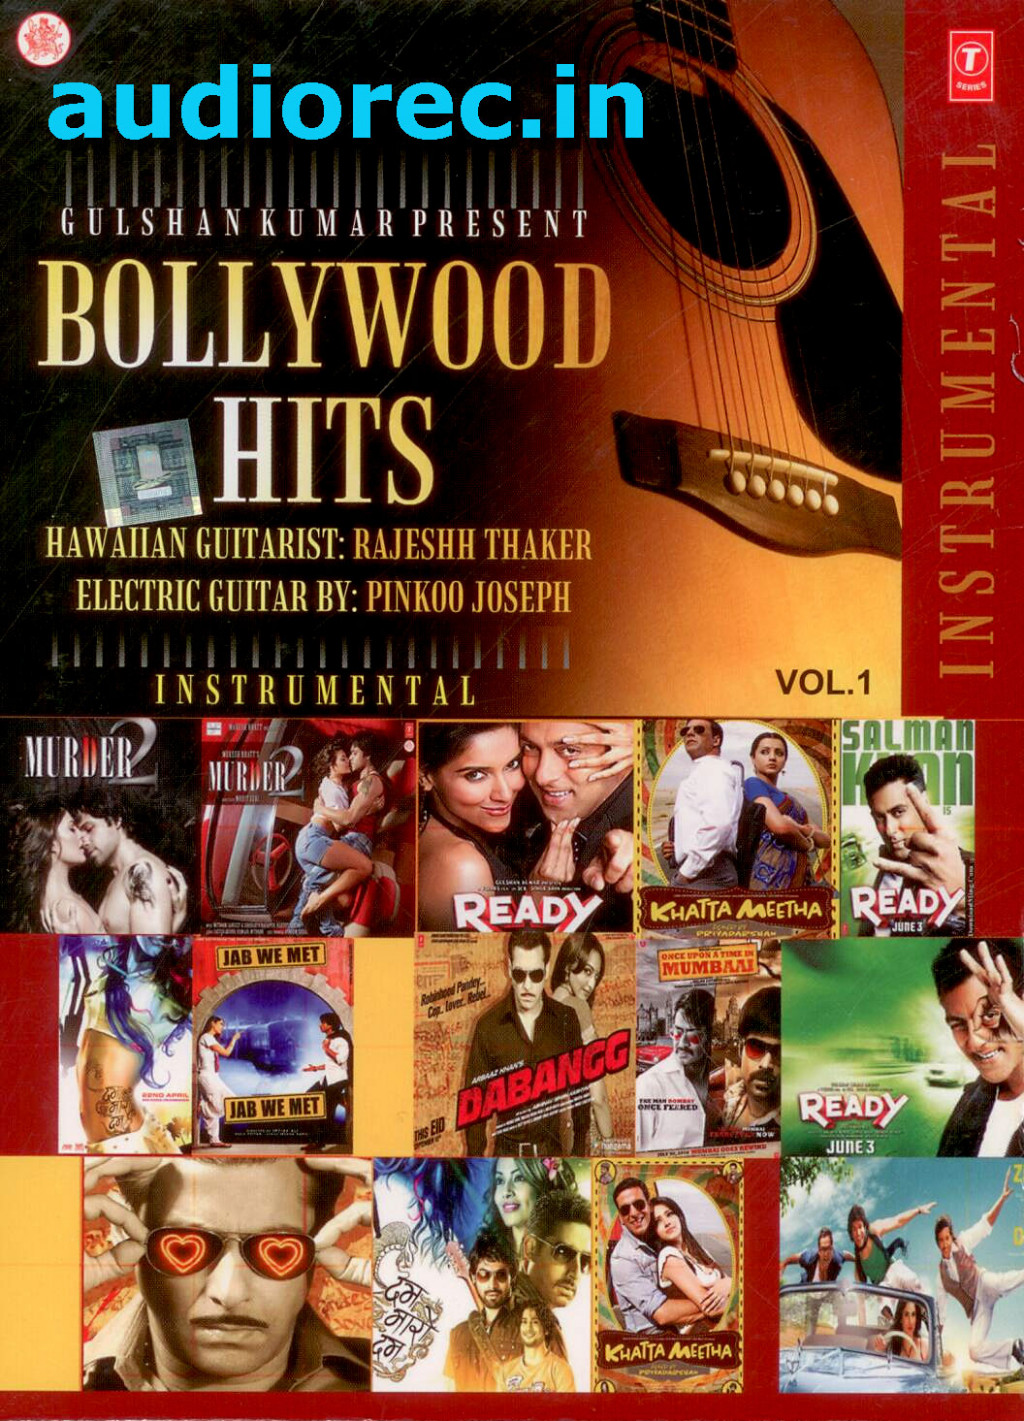 Bollywood Hits Instrumental Vol.1 CD : movie Bollywood ...